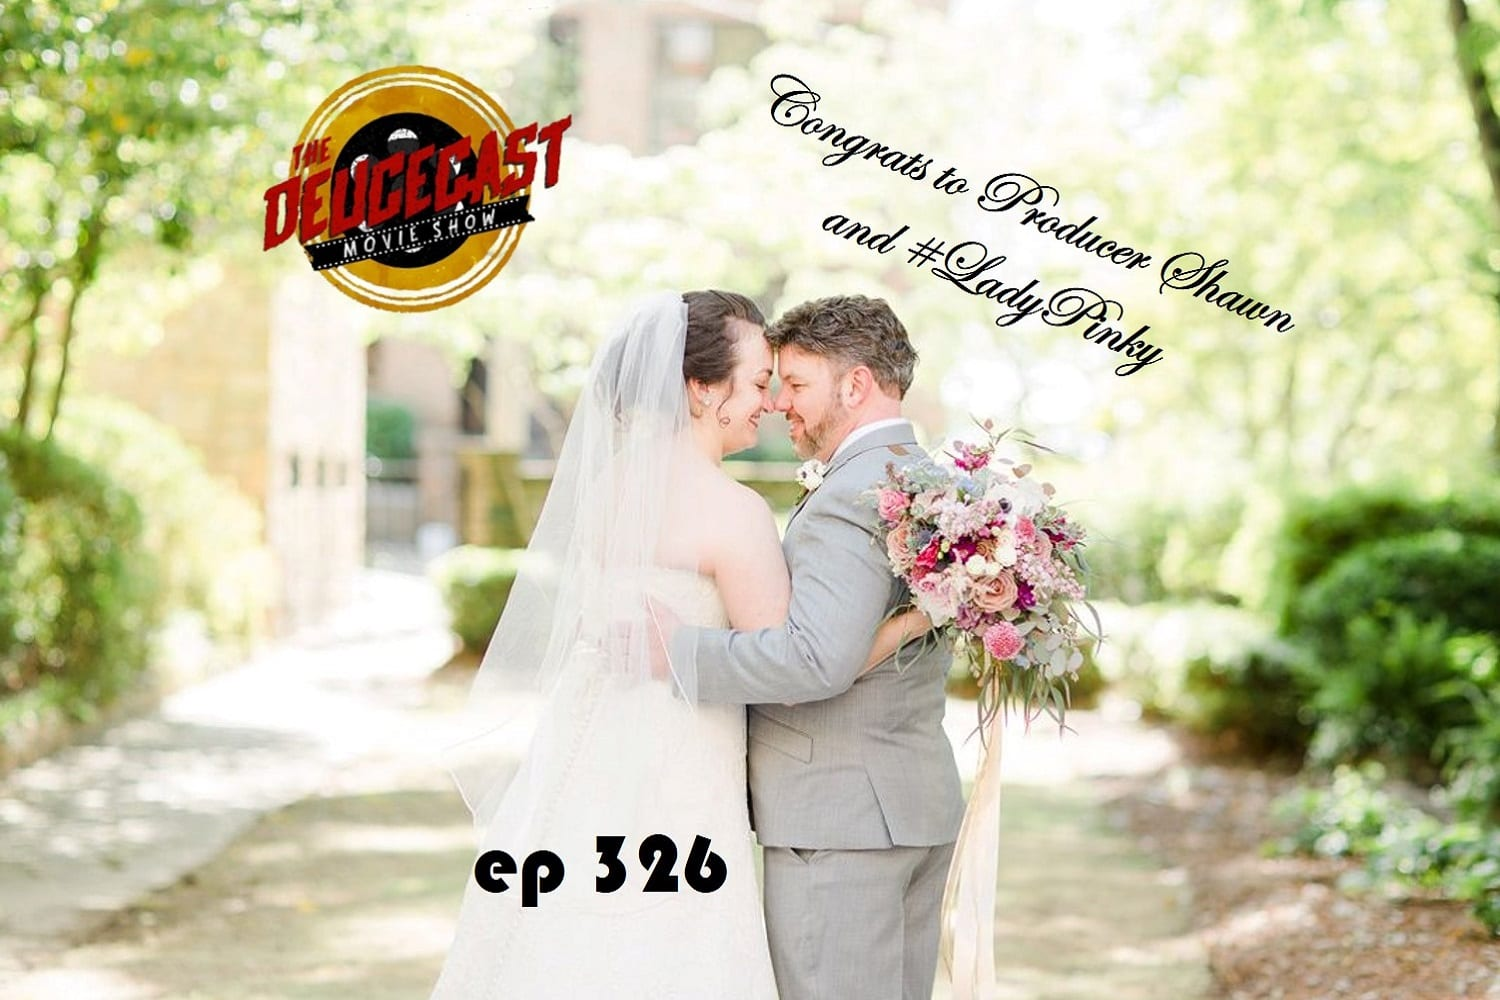 The Deucecast Movie Show #326: Weddings in Movies